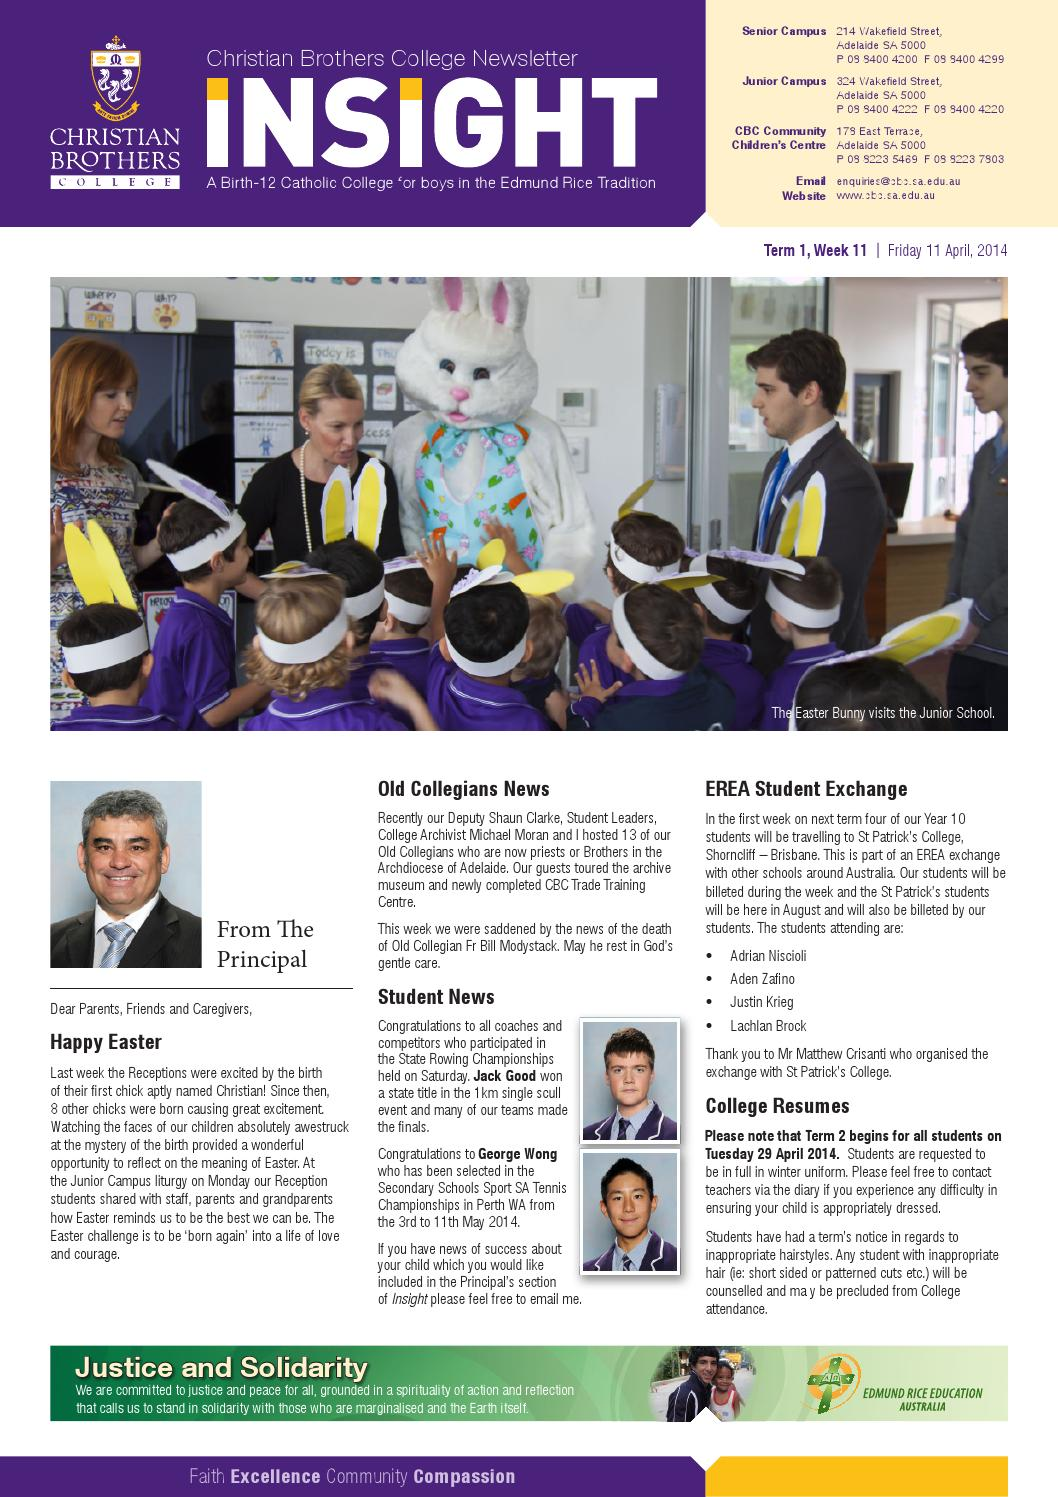 Christian Brothers Near Me >> Insight 2014t1w11 By Christian Brothers College Adelaide Issuu